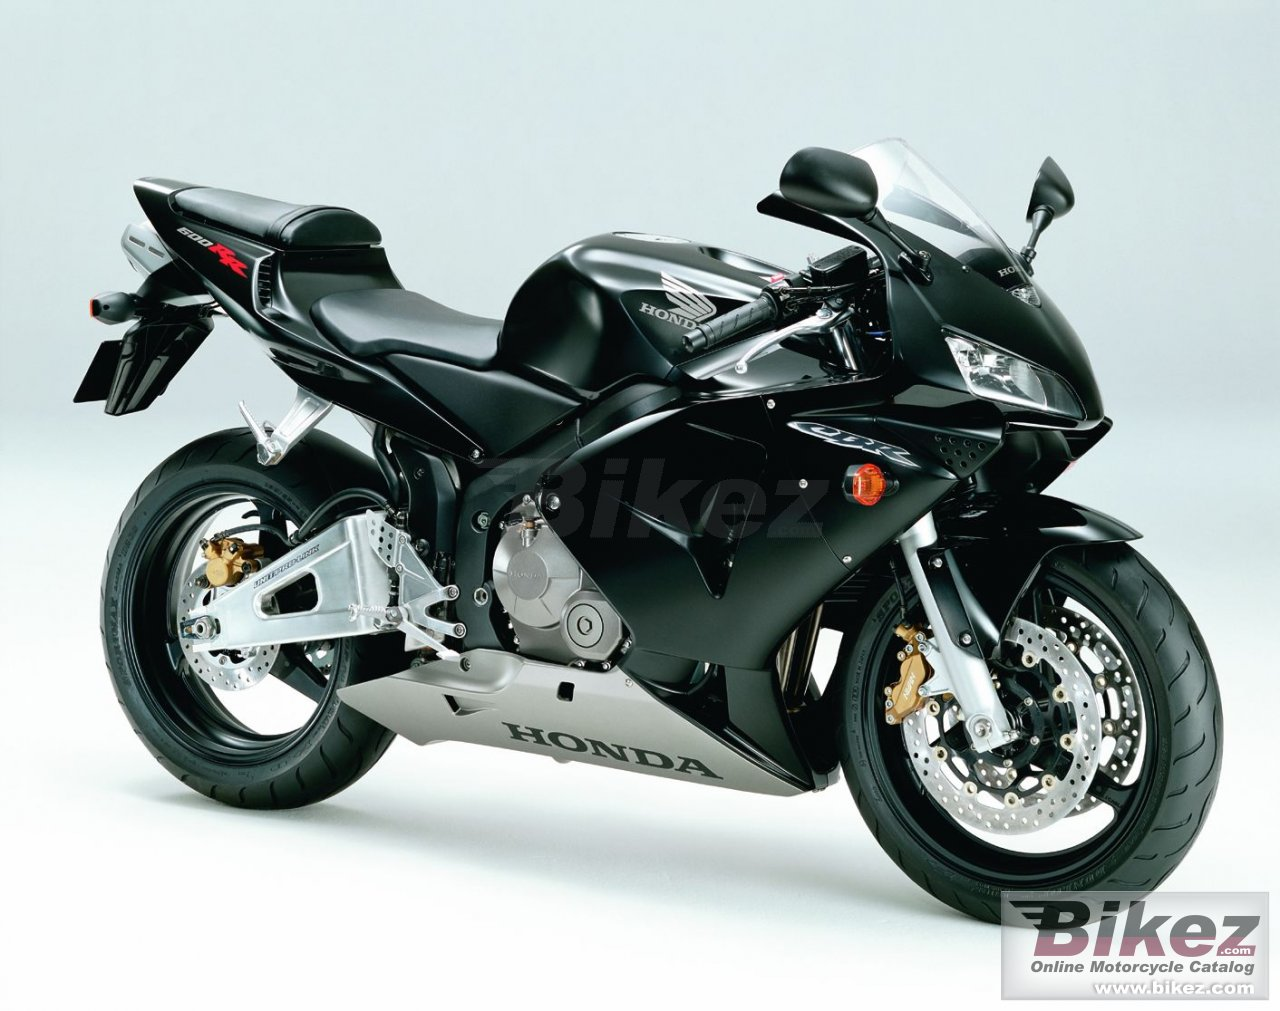 The respective copyright holder or manufacturer cbr 600 rr